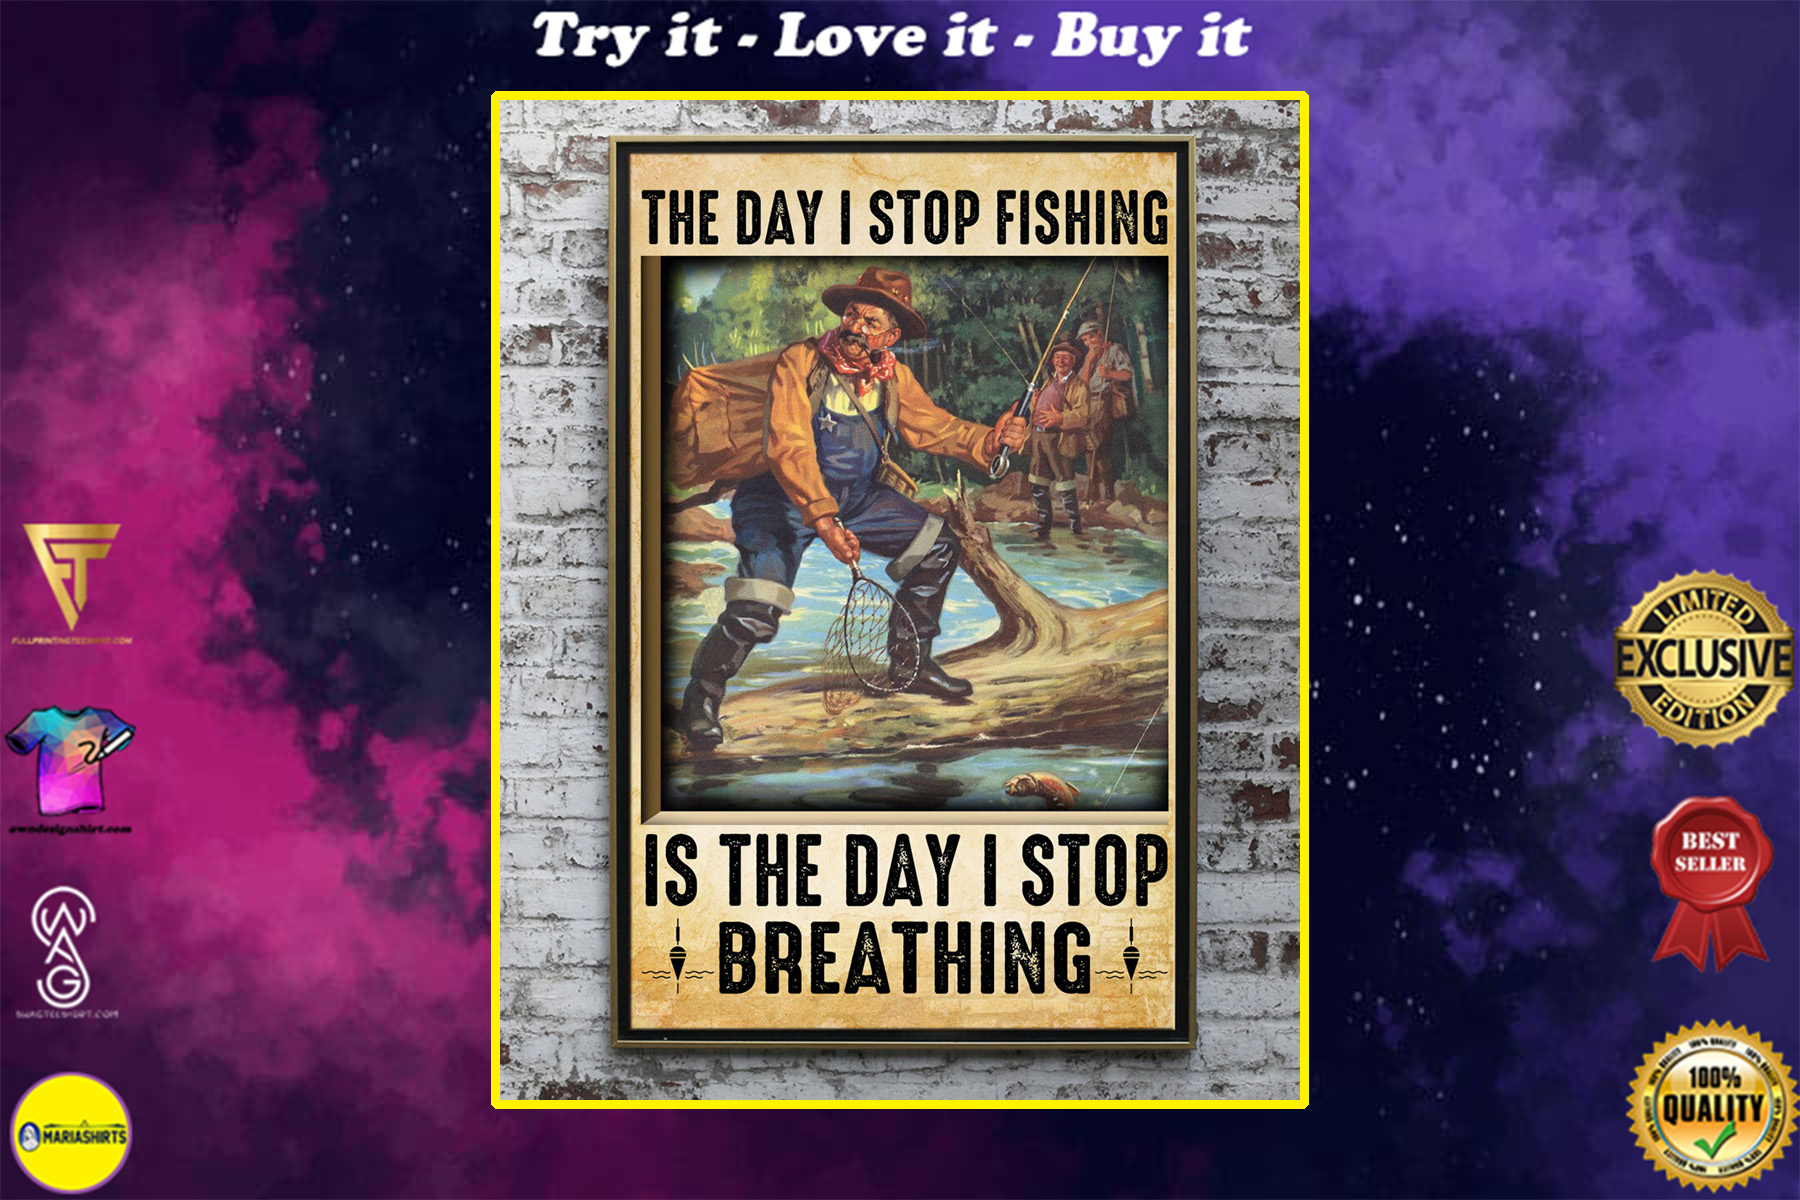 the day i stop fishing is the day i stop breathing old man poster